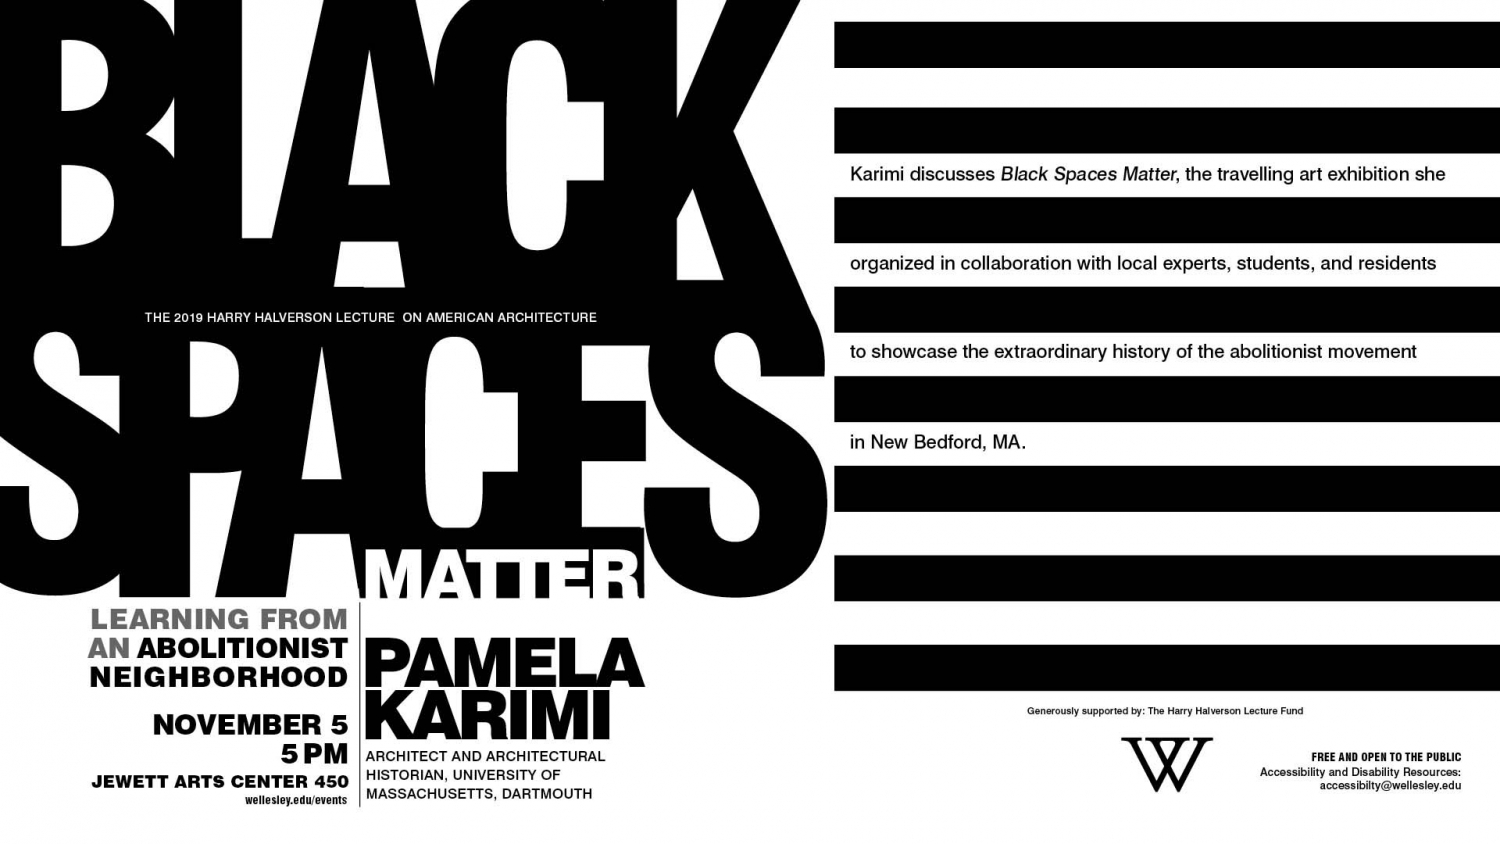 text-based poster for Black Spaces Matter lecture